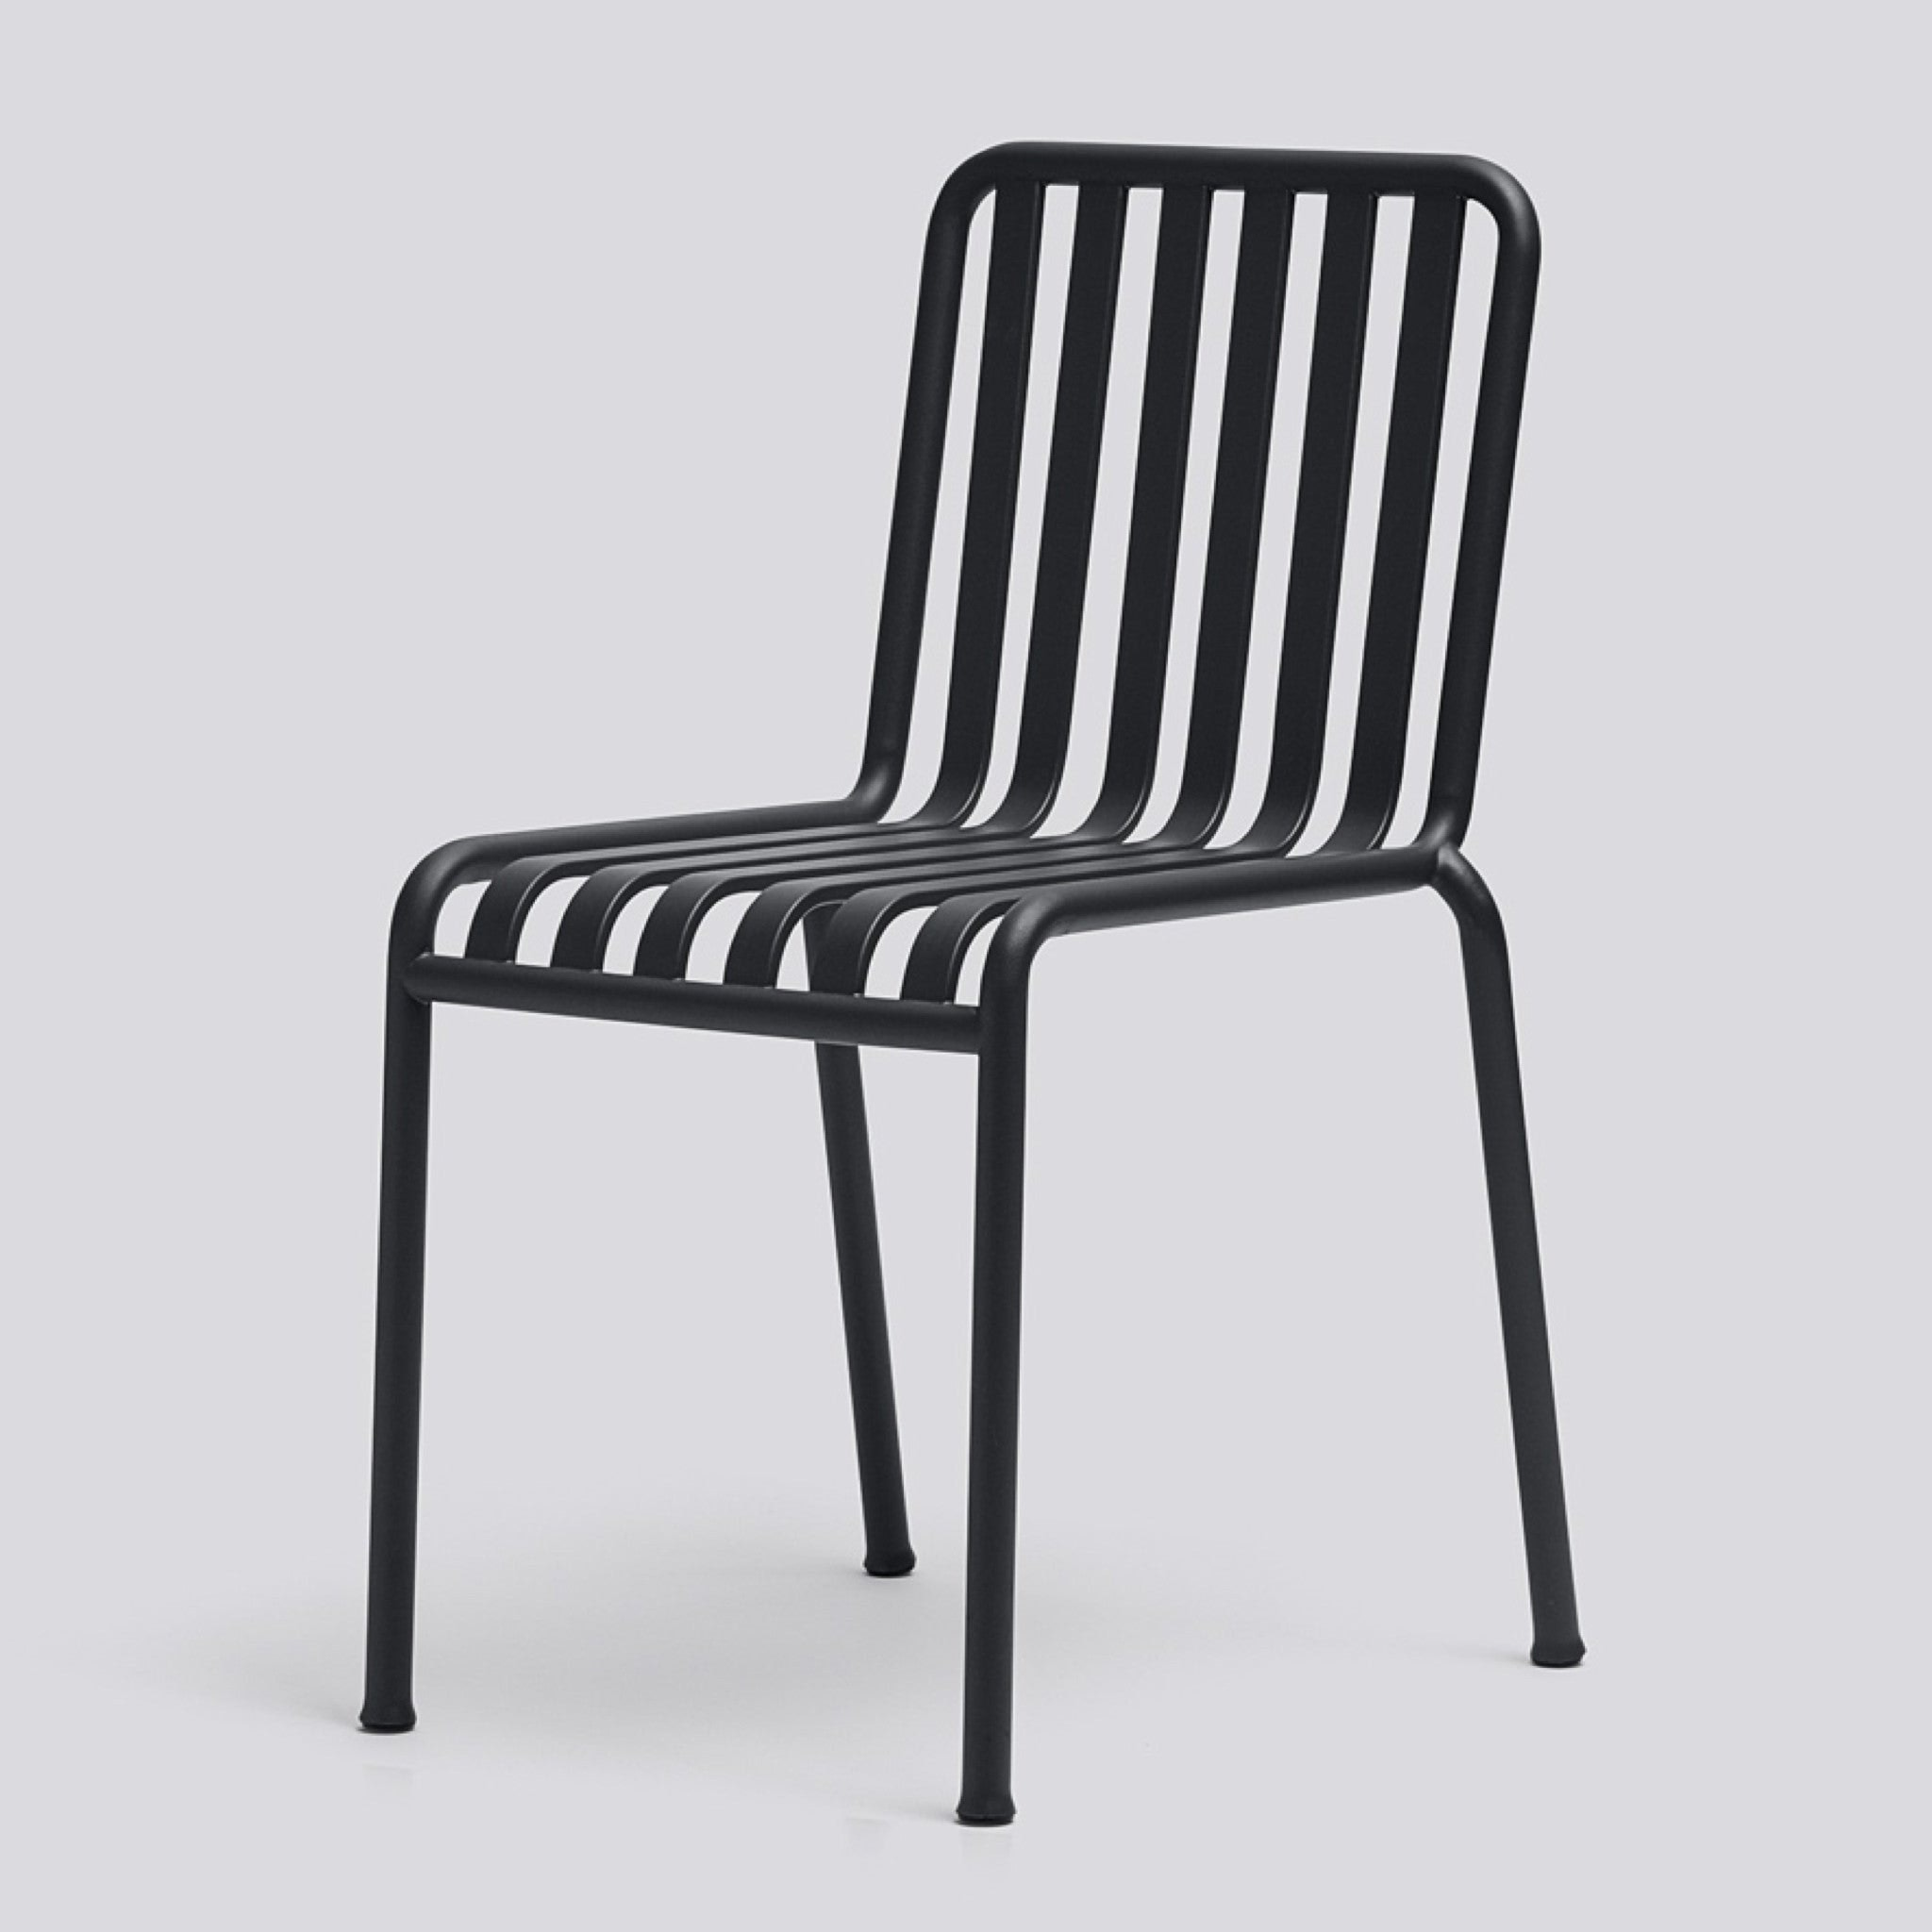 Palissade Chair by Hay